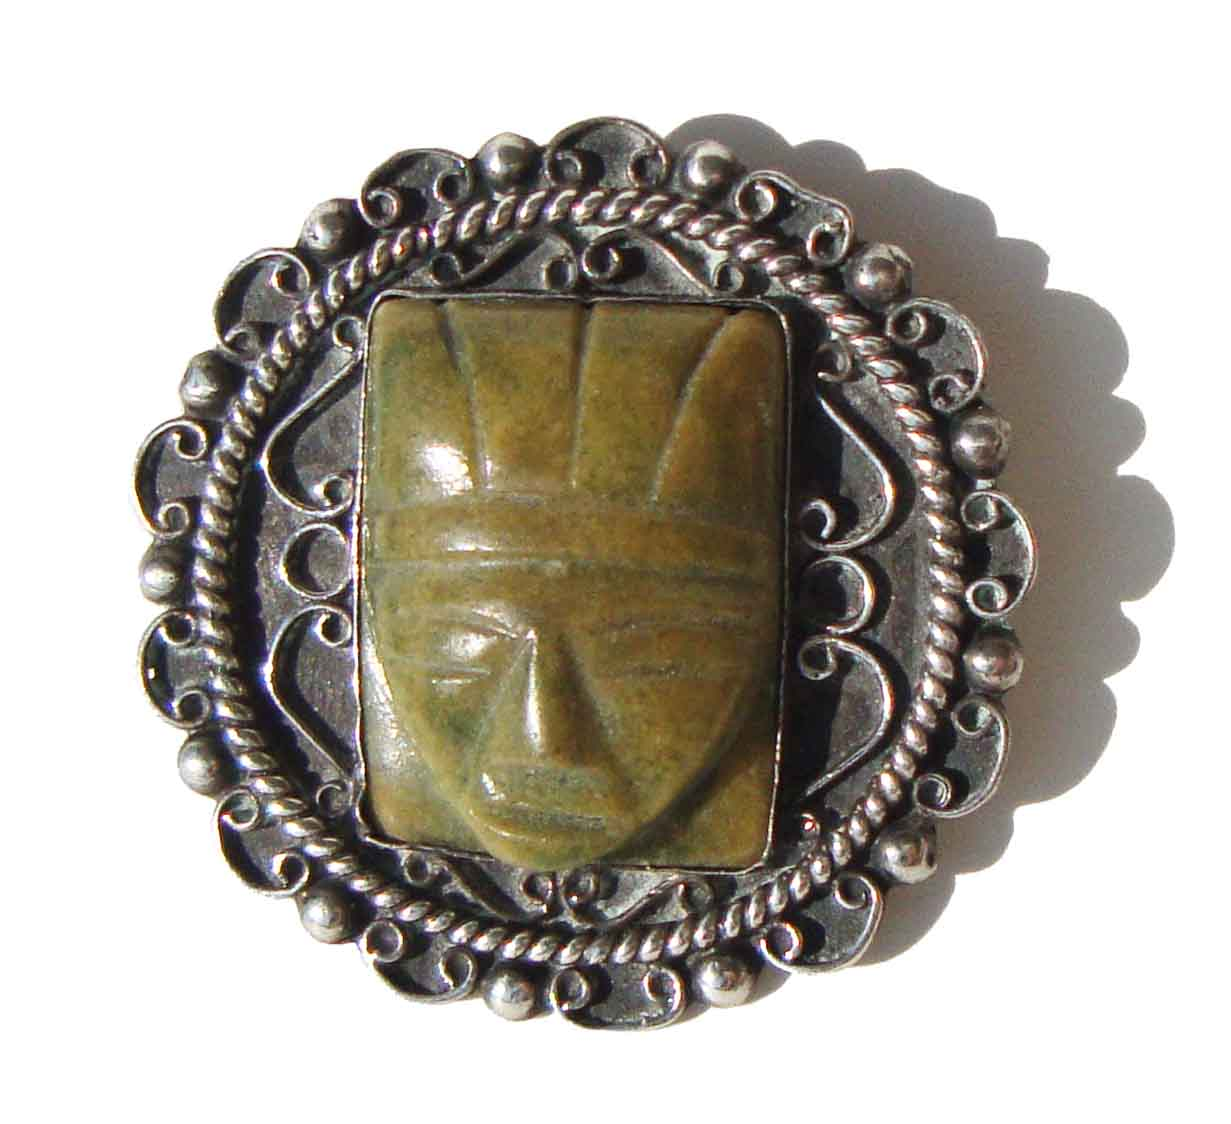 Vintage 40s Taxco Brooch 980 Silver & Faux Jade Mask Pin